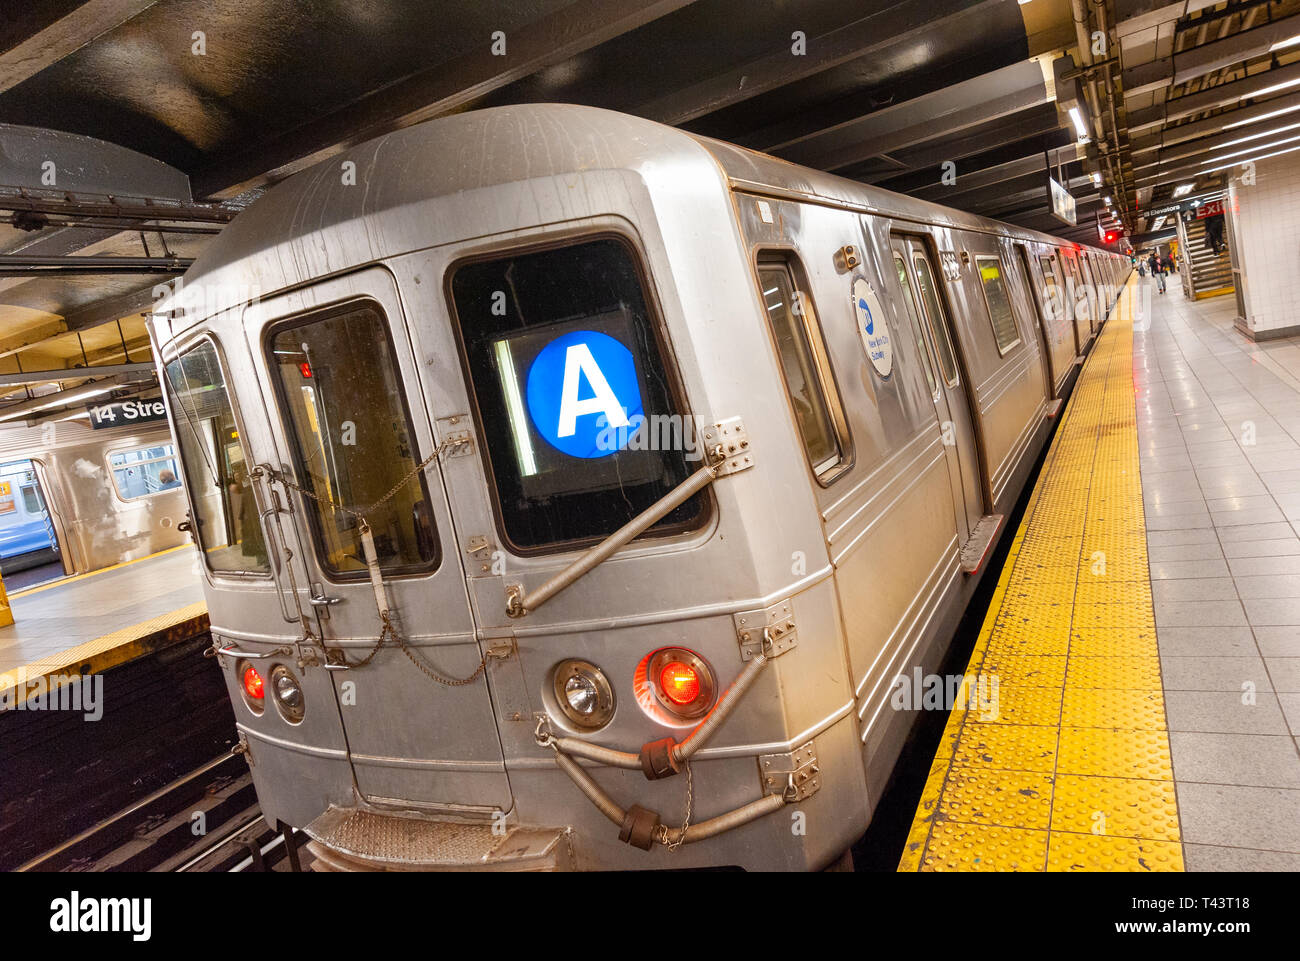 The A train New York subway line, New York City, USA - Stock Image